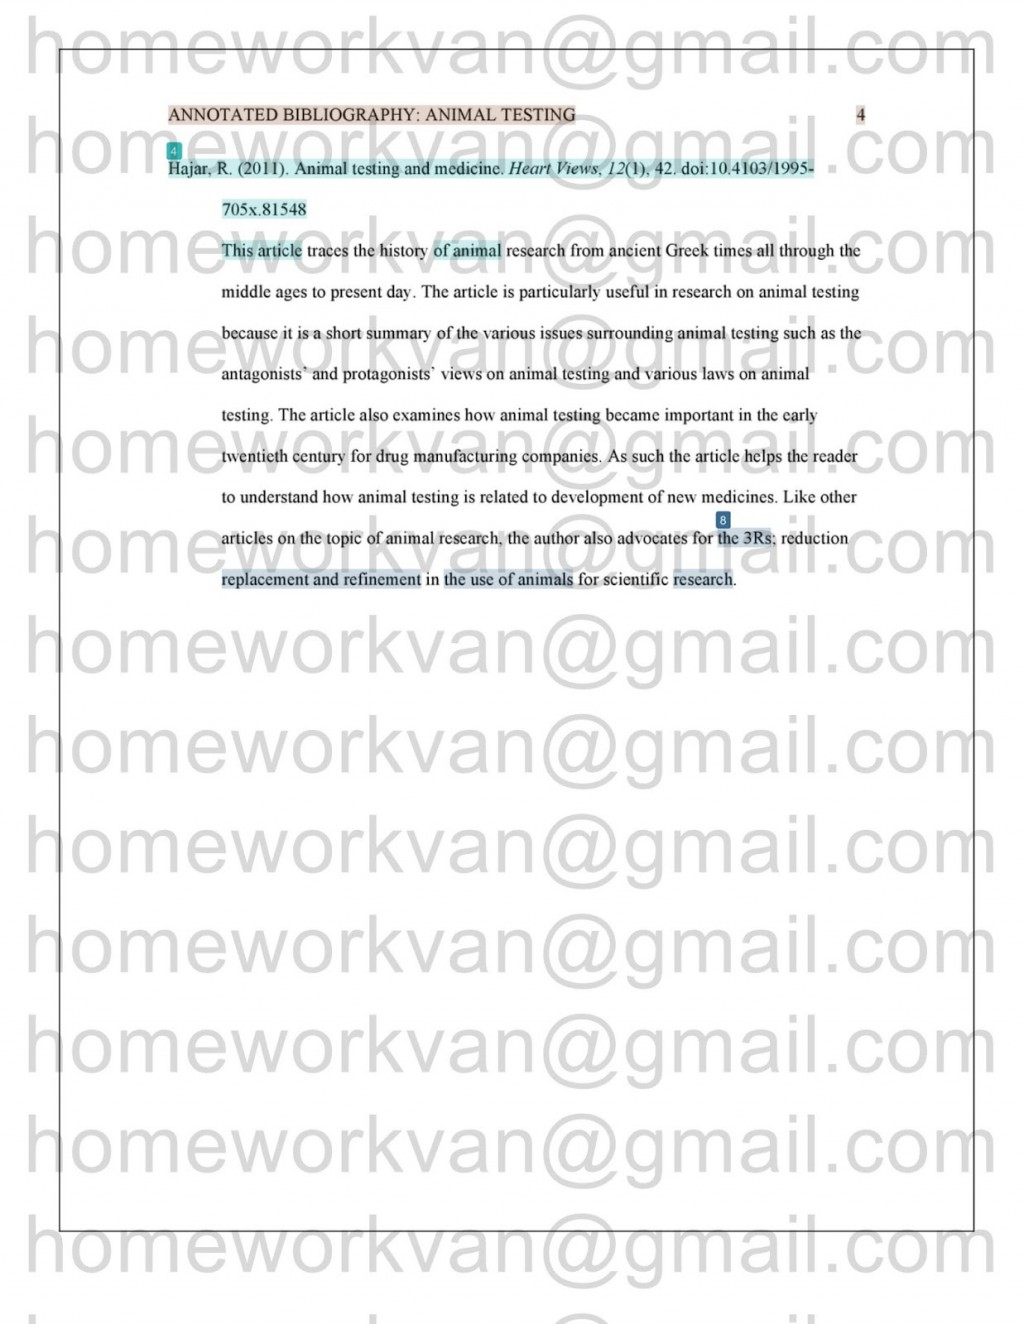 010 Homeworkvan2bannotated 3 Research Paper Animal Testing Awful Questions Large